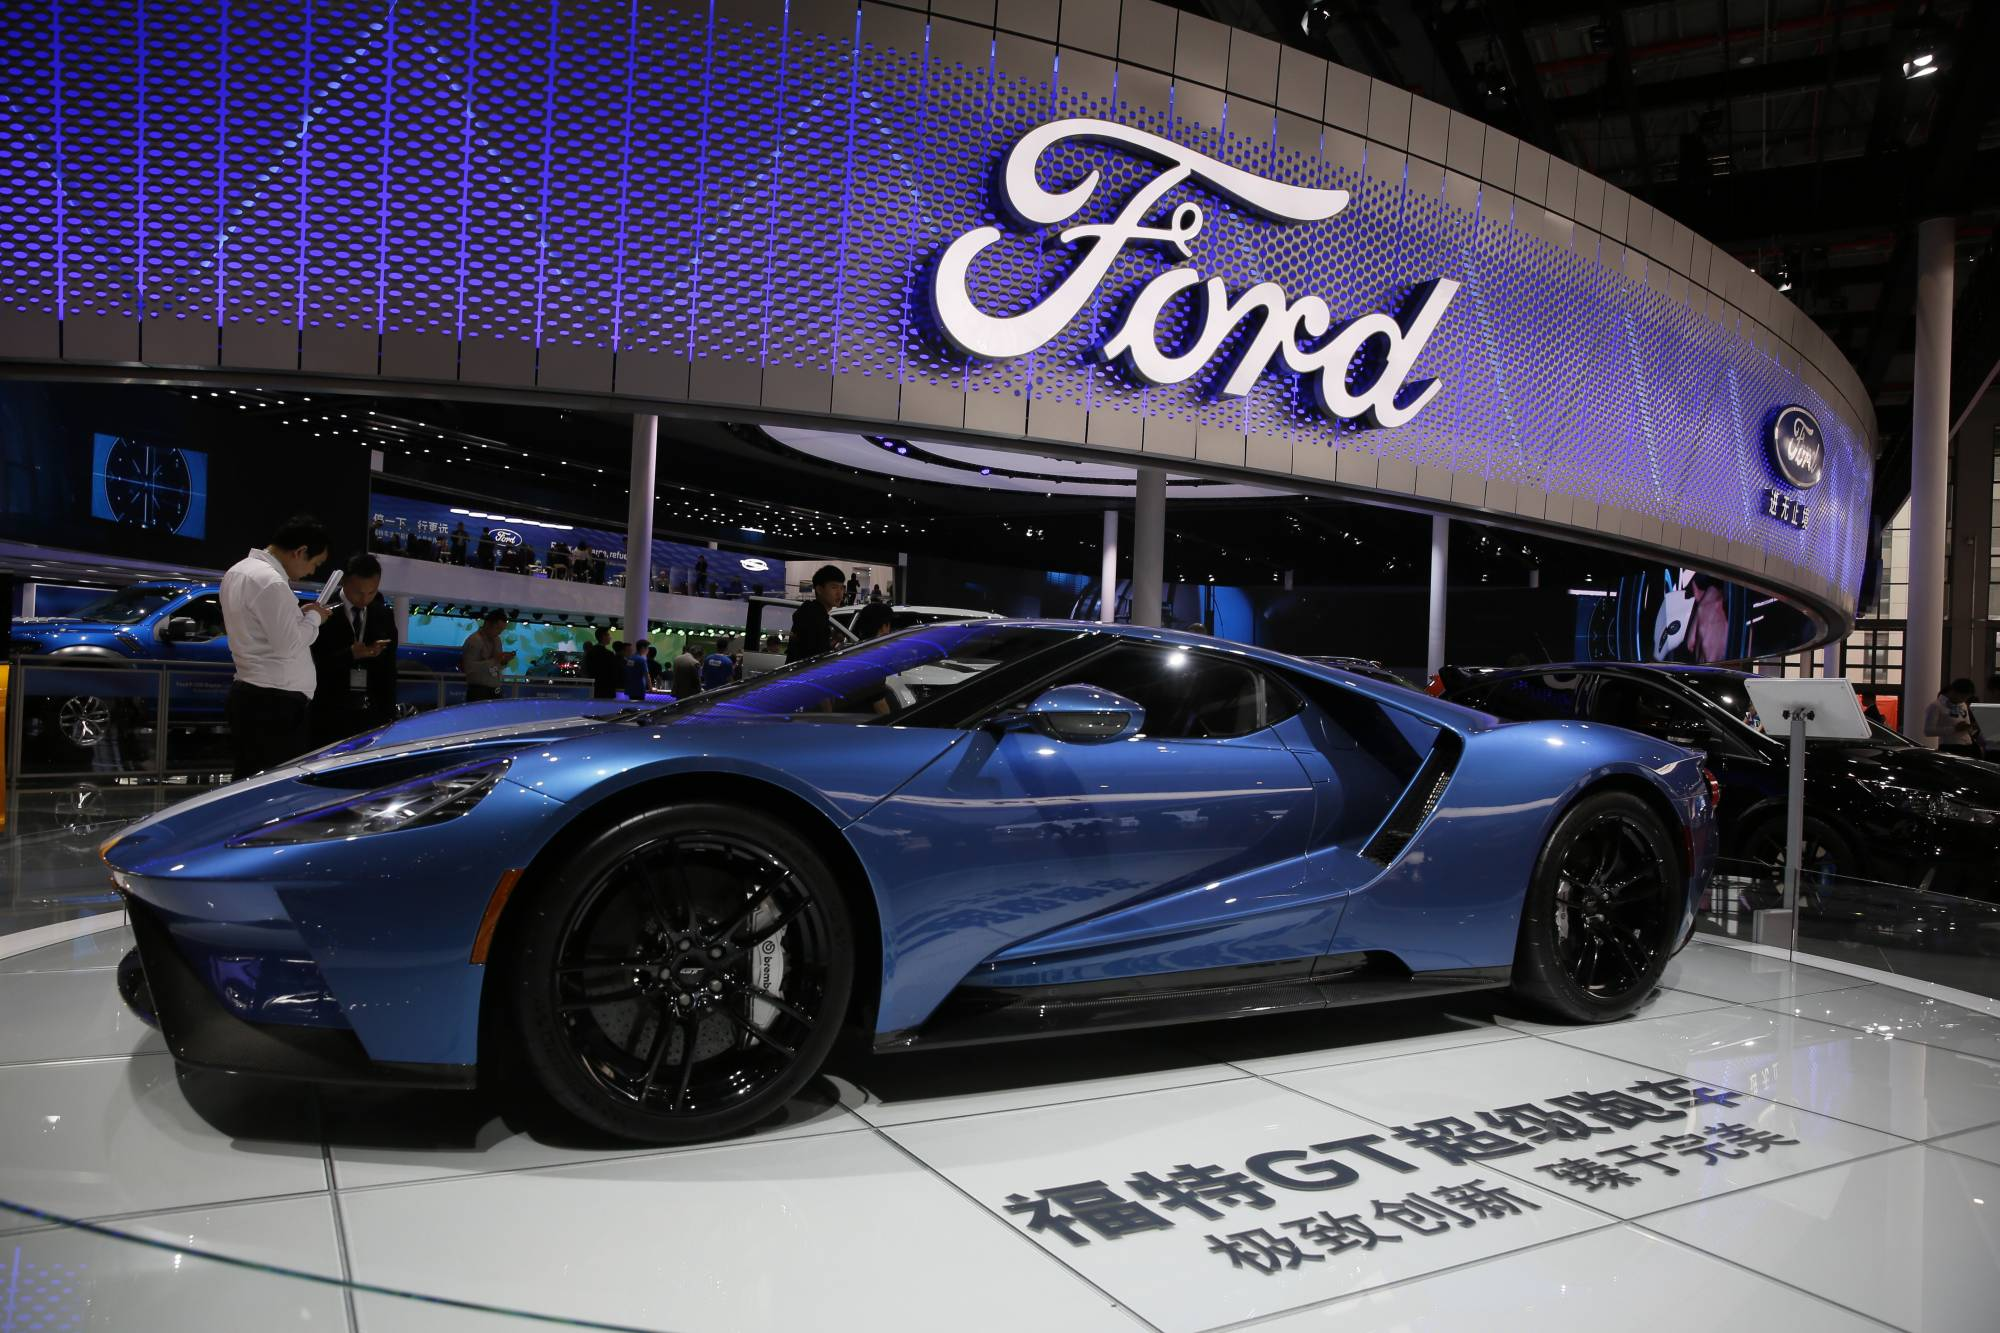 Ford 39 S 2q Profit Better Than Expected Despite Ceo Turmoil